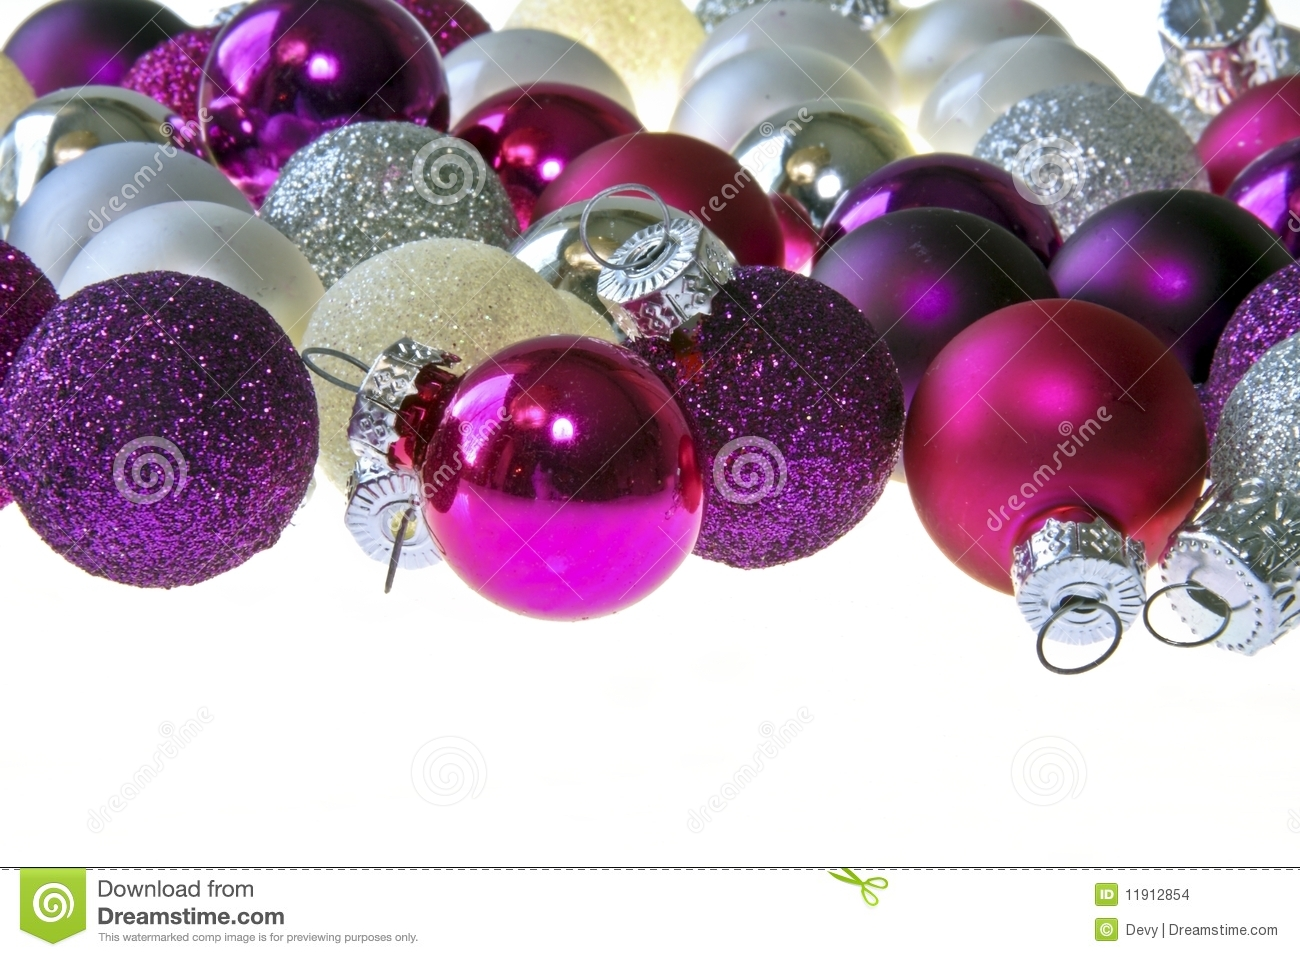 Purple and silver christmas decorations - Christmas Isolated Purple Silver